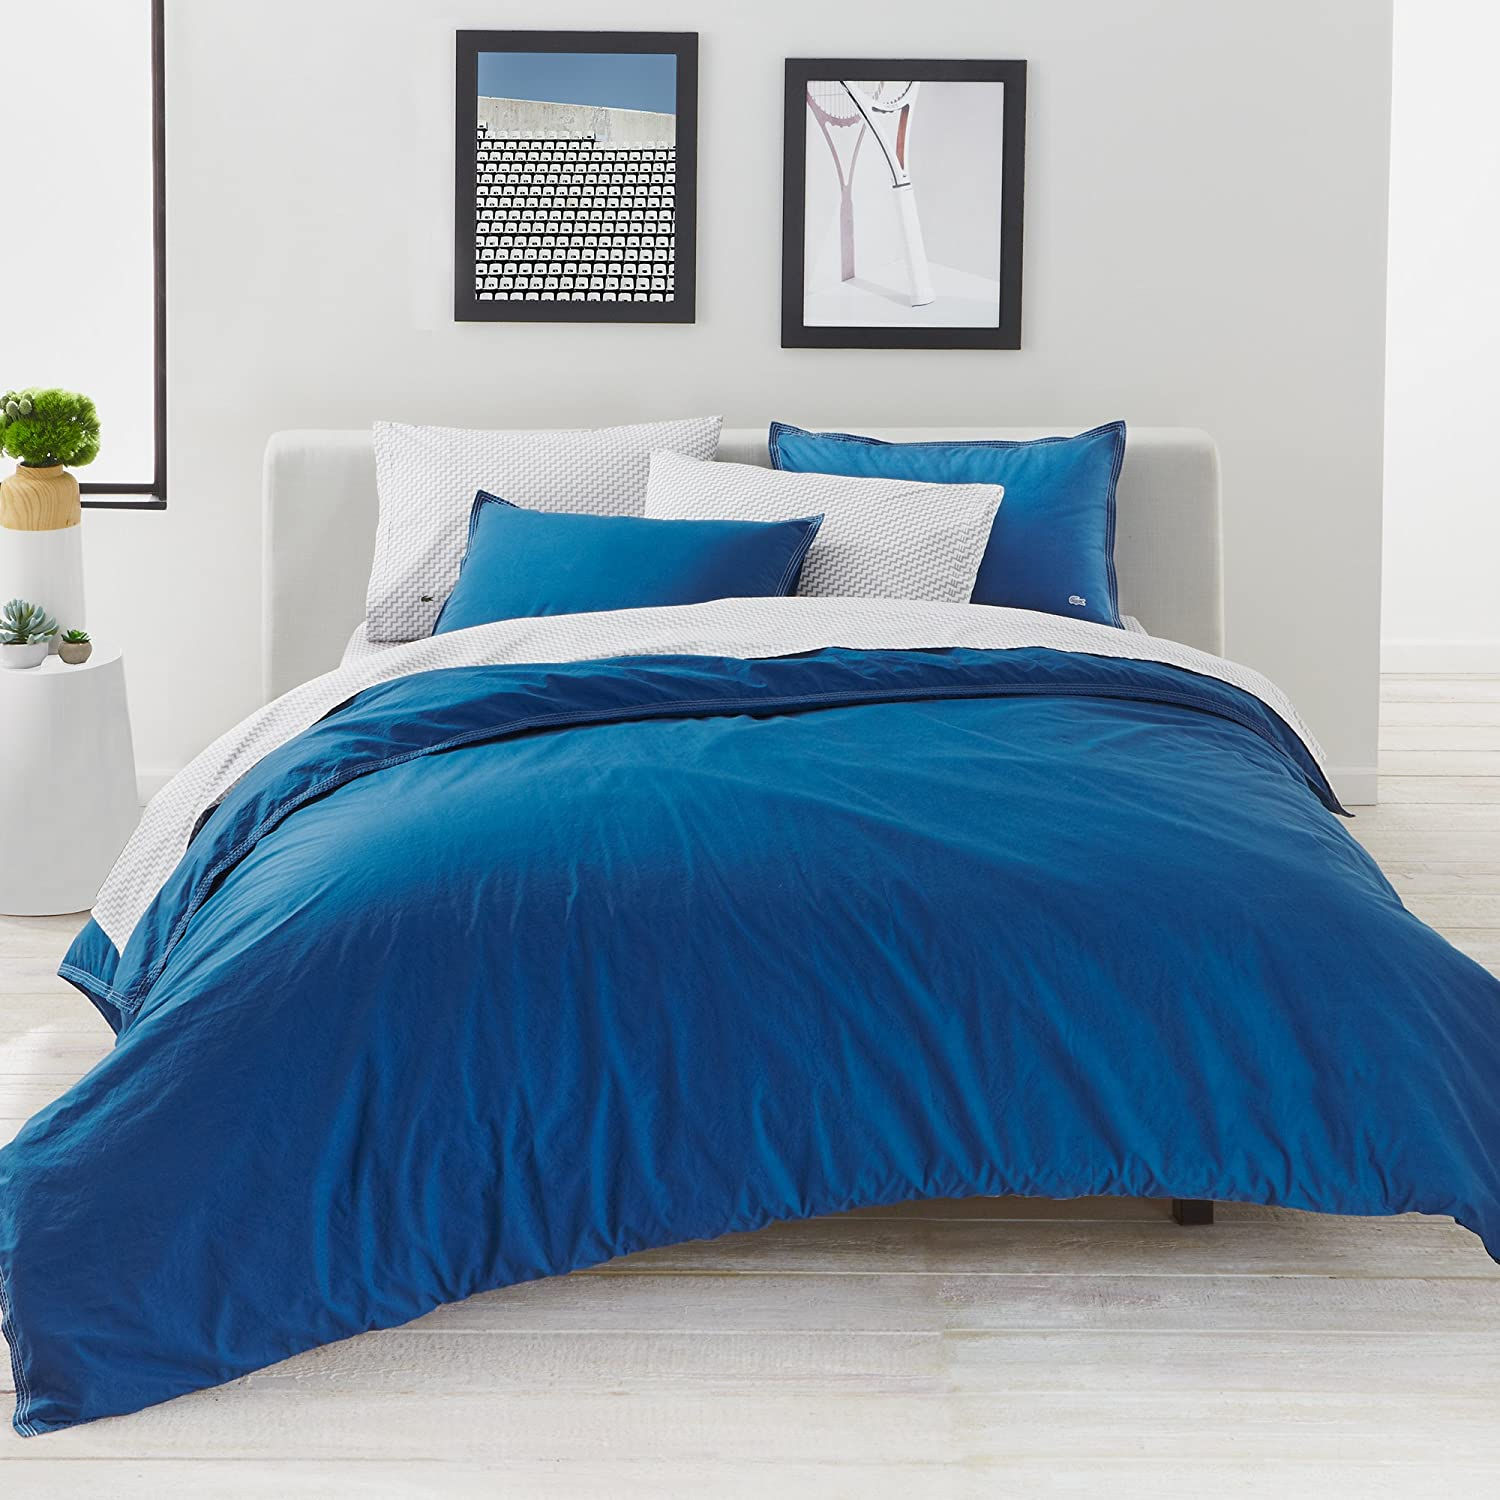 Lacoste Washed Solid Duvet Set, bluee Sapphire, King